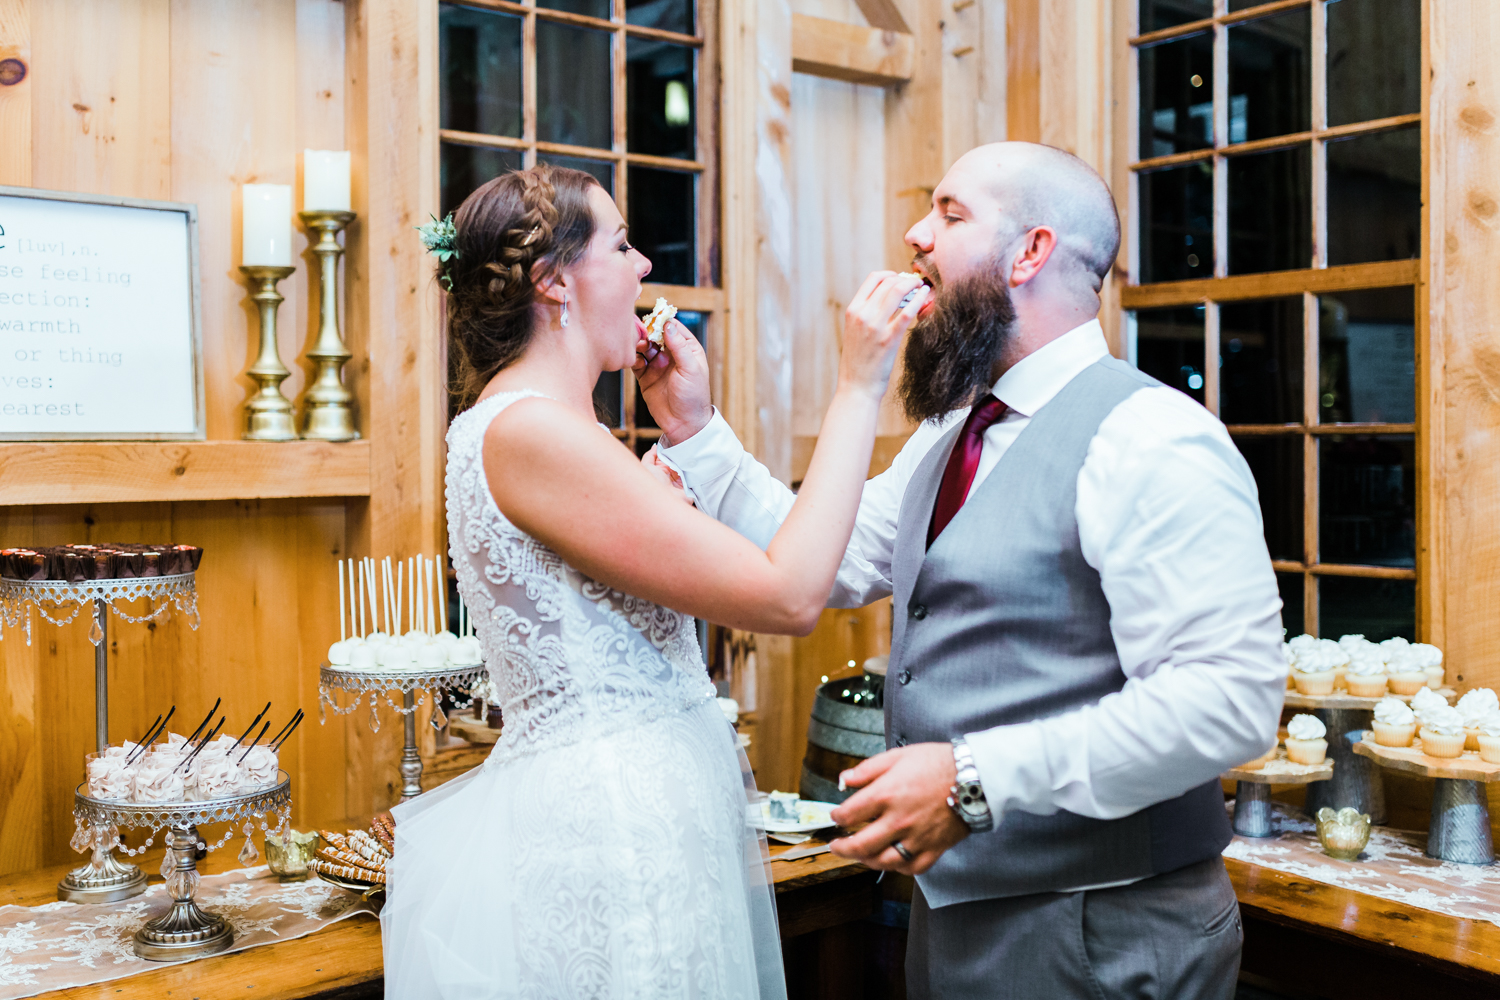 Highly rated photography business in DMV area - bride and groom feed cake to each other